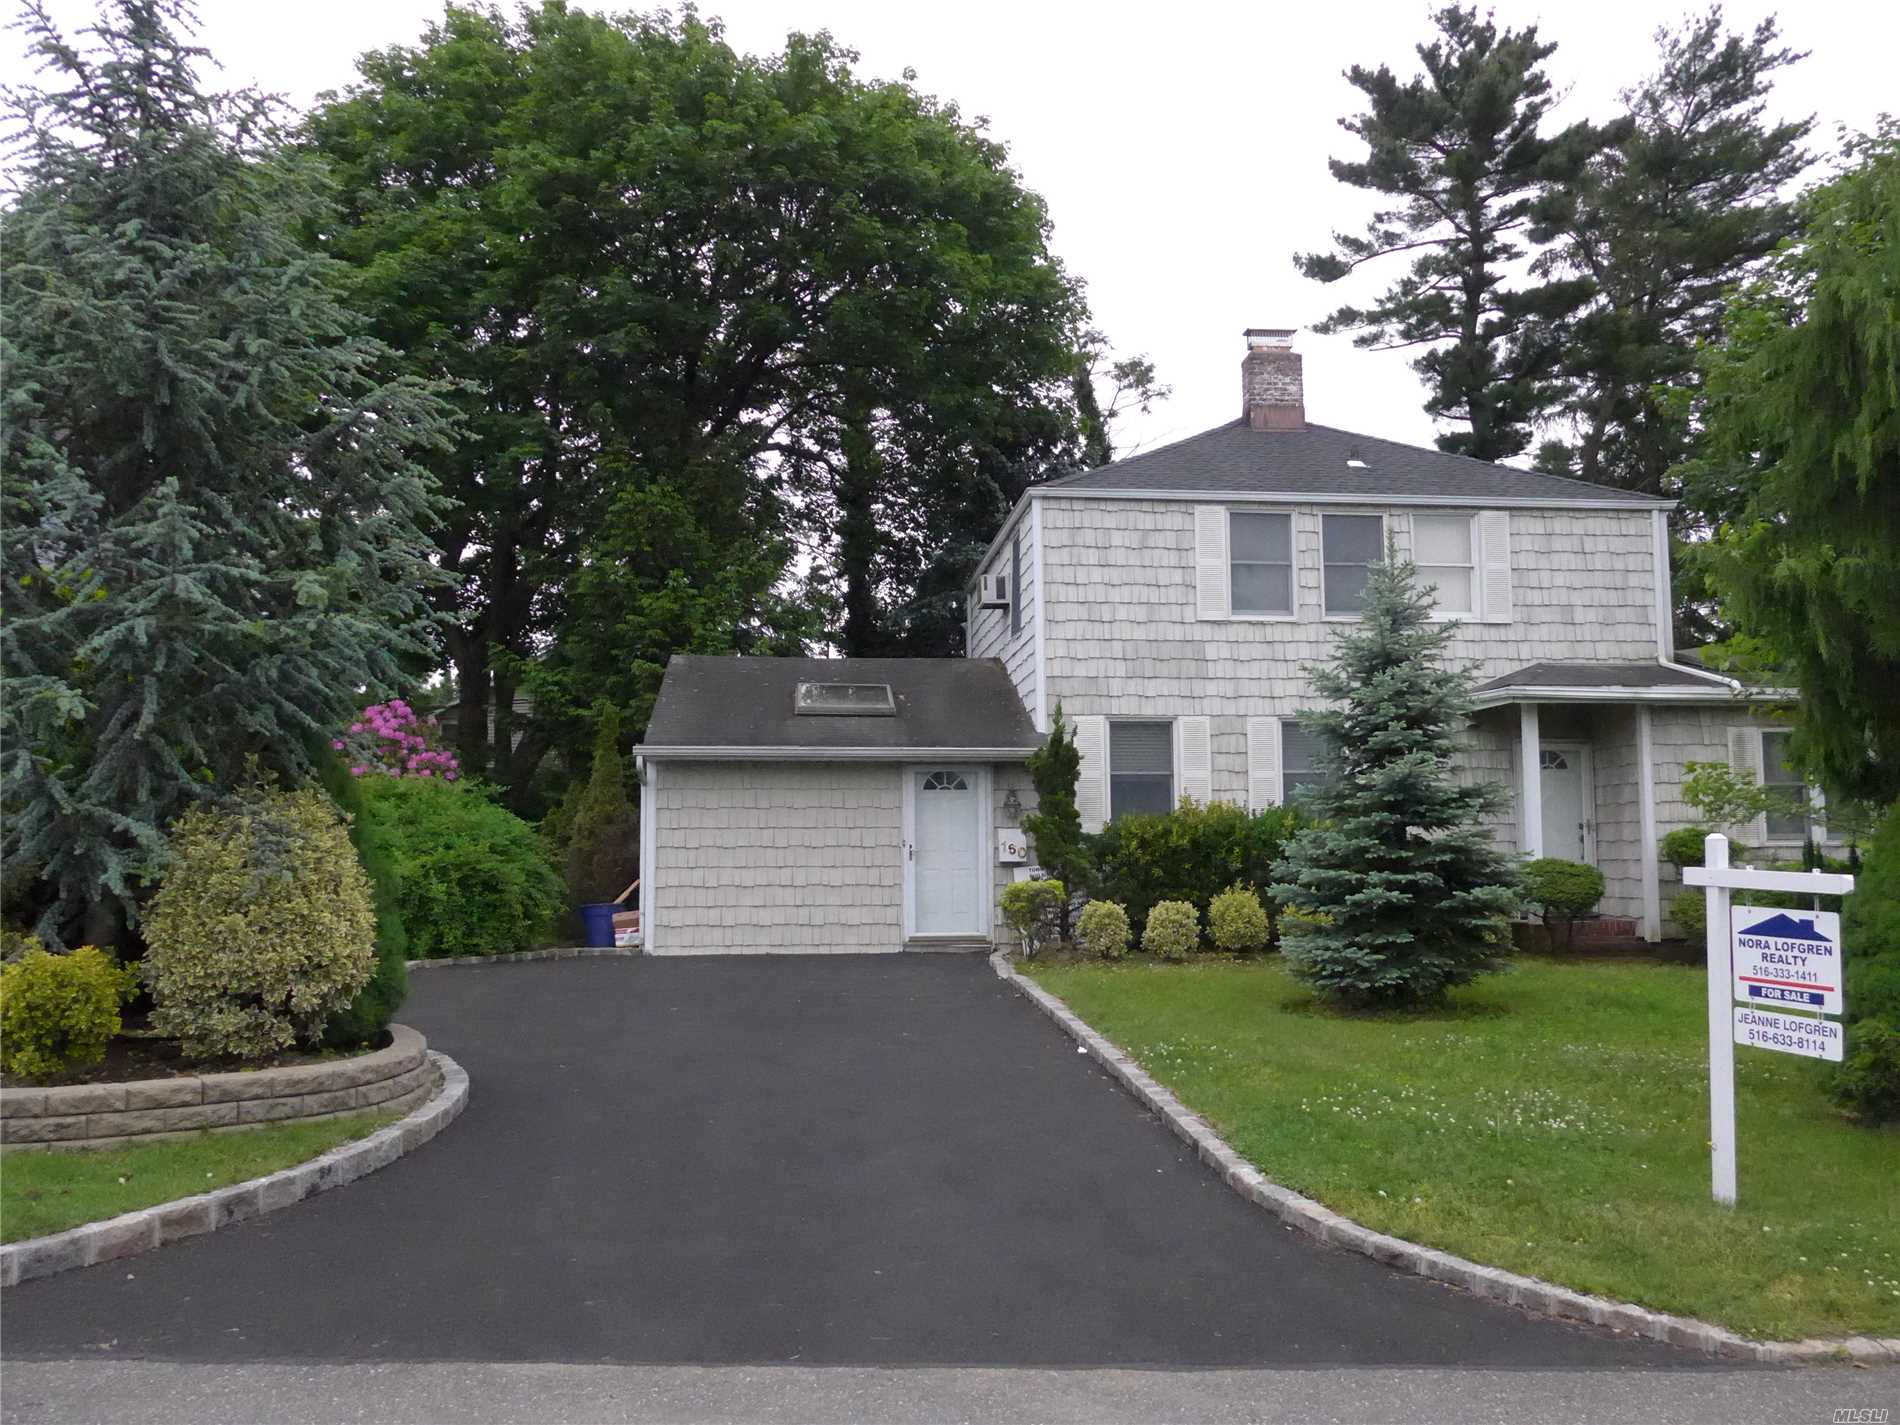 Don't miss this spacious 4 bedroom/2.5 bath colonial. Great location near schools, stores, & LIRR. Large family room w/vaulted ceiling, living room w/fireplace, first-floor master suite w/walk-in-closet. Main floor freshly painted and new carpet. New gas burner and new hot water tank. Low taxes~Won't last